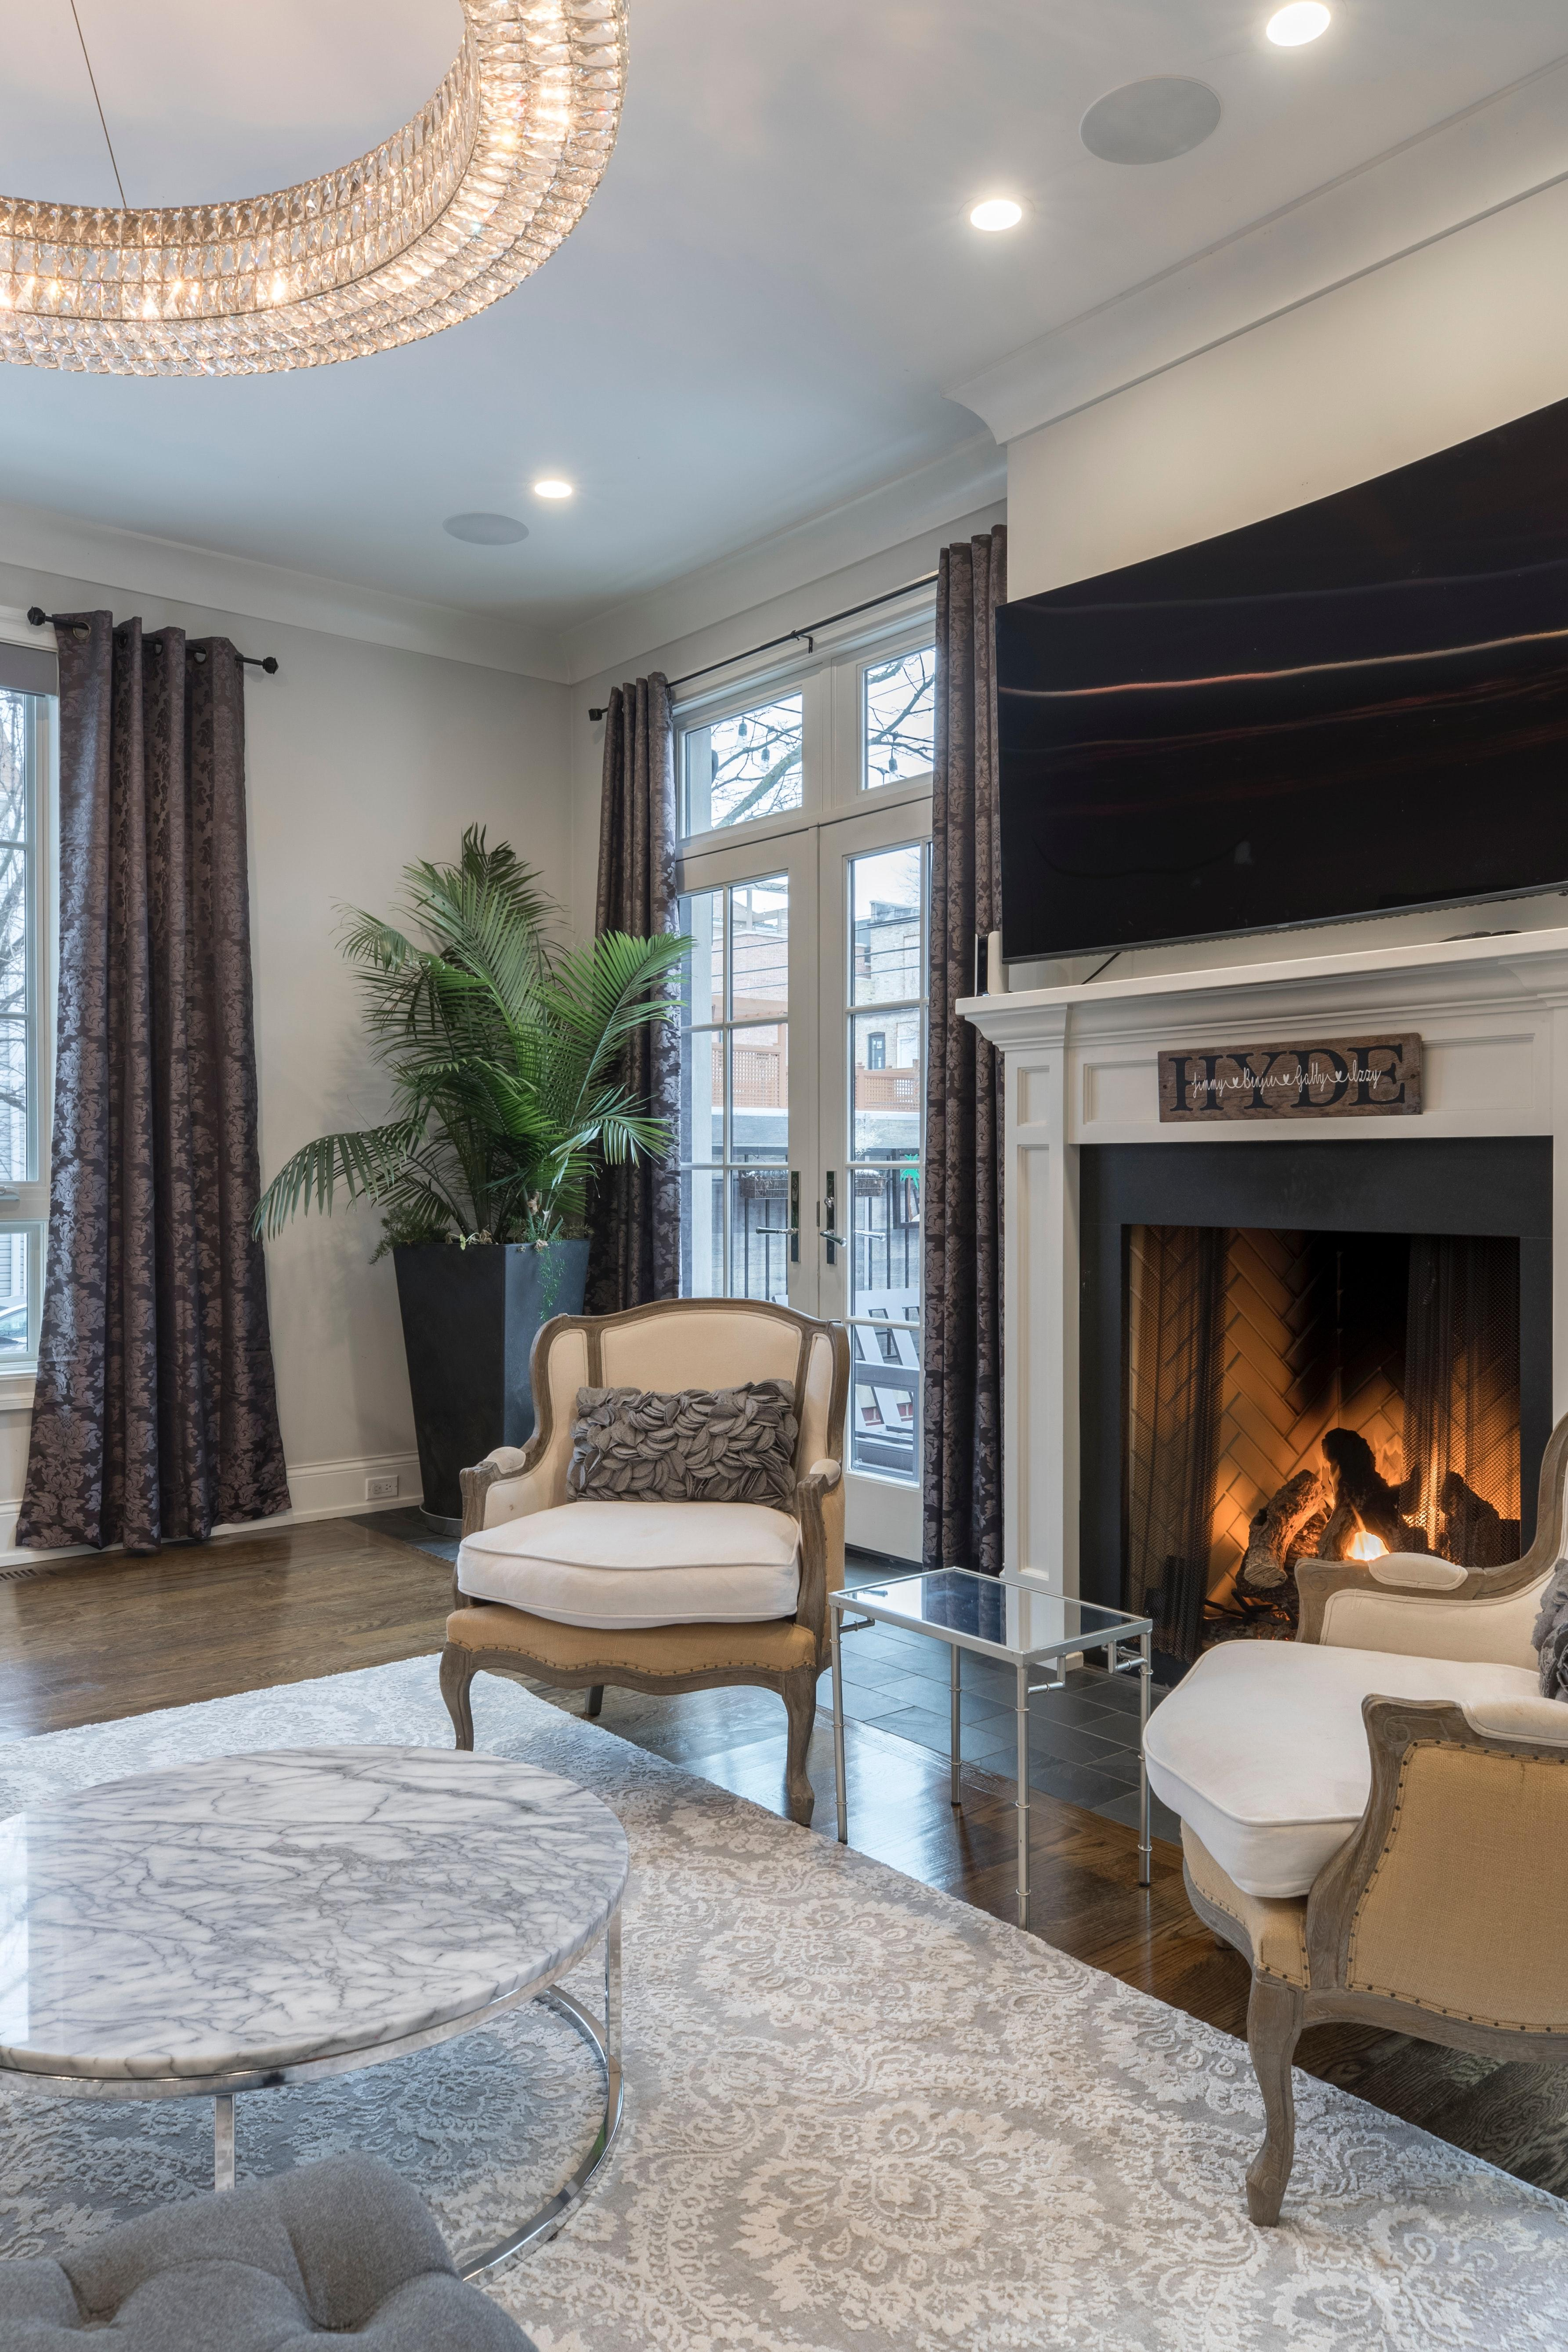 7 New Traditional Living Room Decor Ideas For An Elegant ...